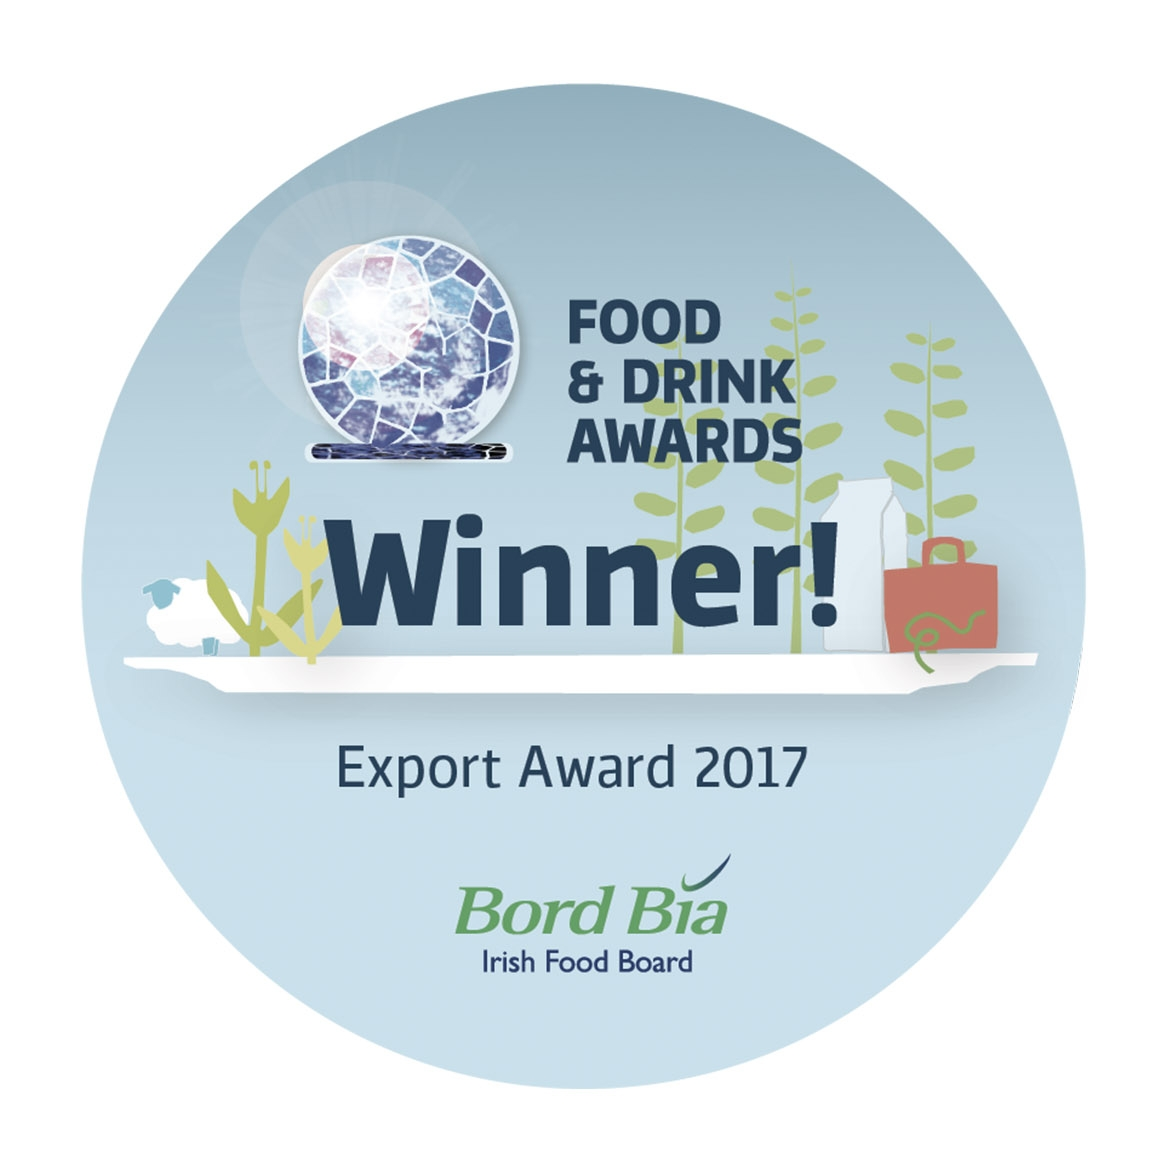 Bord Bia Export Award - 2017Silver Hill Farm won the prestigious Bord Bia Export Award for our success in overseas markets. A fantastic achievement for our outstanding and dedicated team of employees.